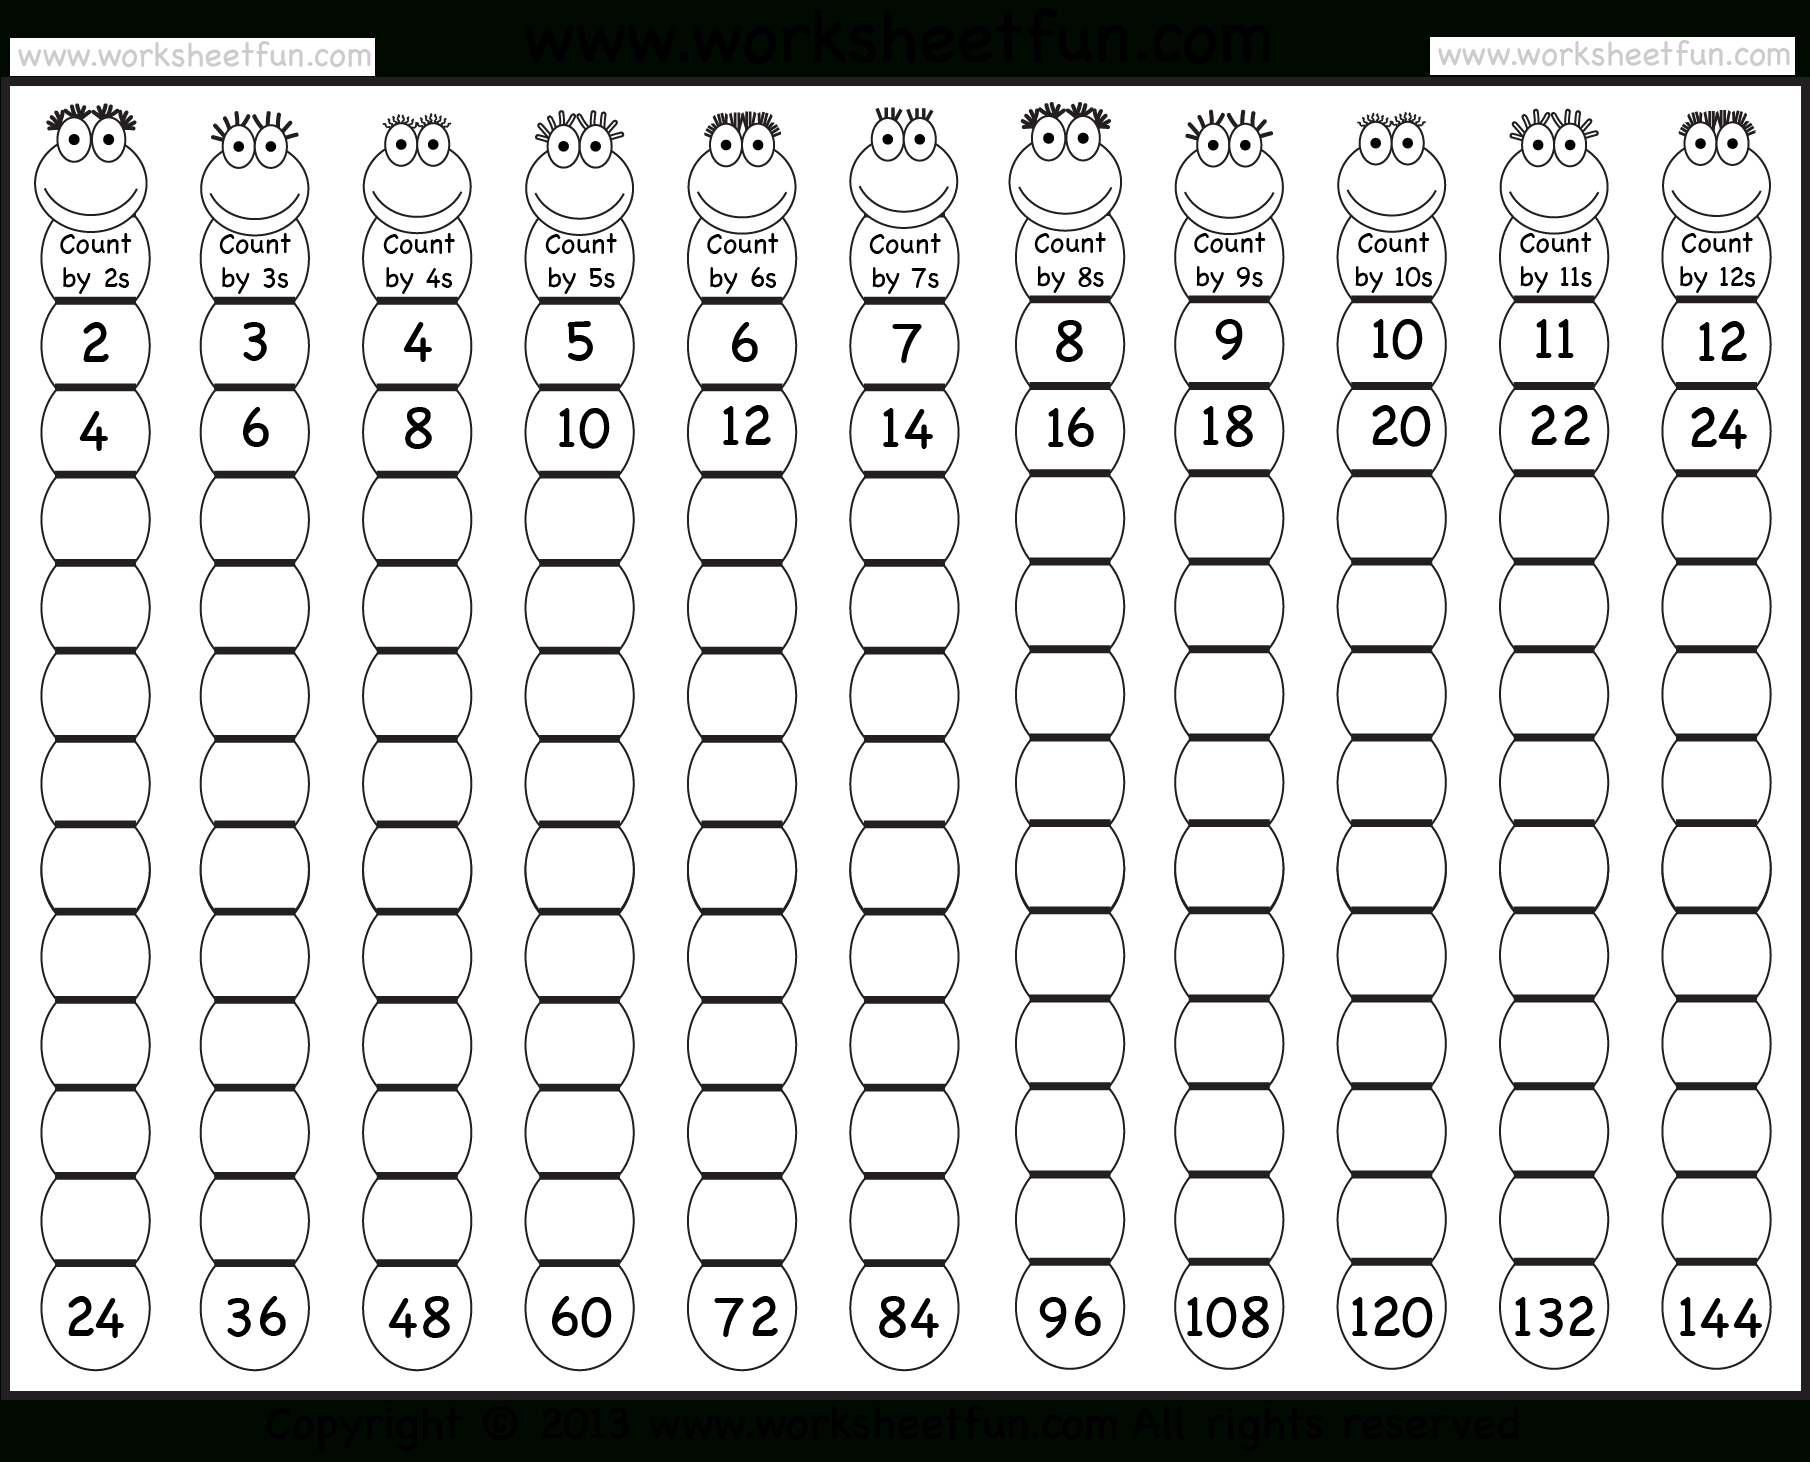 Times Table – 2-12 Worksheets – 1, 2, 3, 4, 5, 6, 7, 8, 9, 10, 11 - Free Printable Skip Counting Worksheets